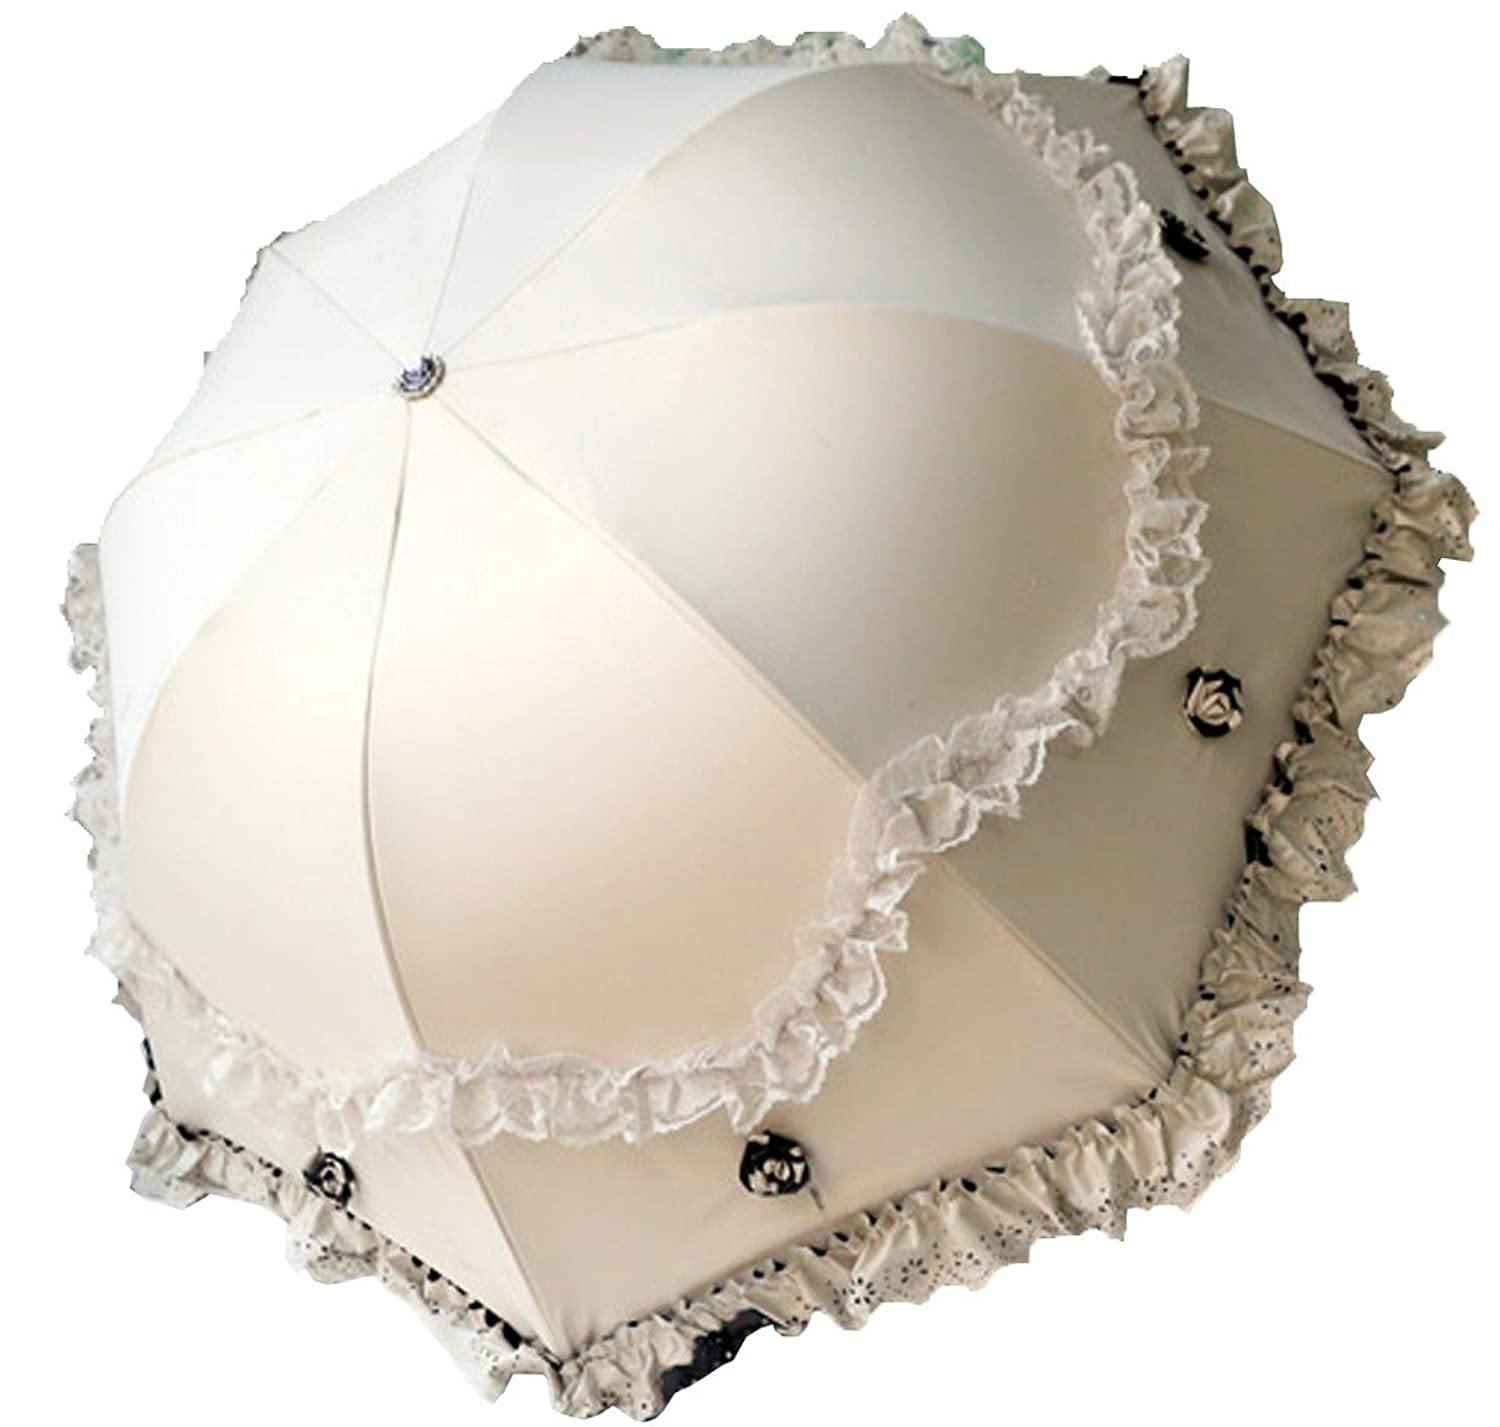 Victorian Dresses, Capelets, Hoop Skirts, Blouses Supergirl Women Parasol Travel Compact Lace Sunshade Anti-UV Windproof Rain Umbrella $28.99 AT vintagedancer.com